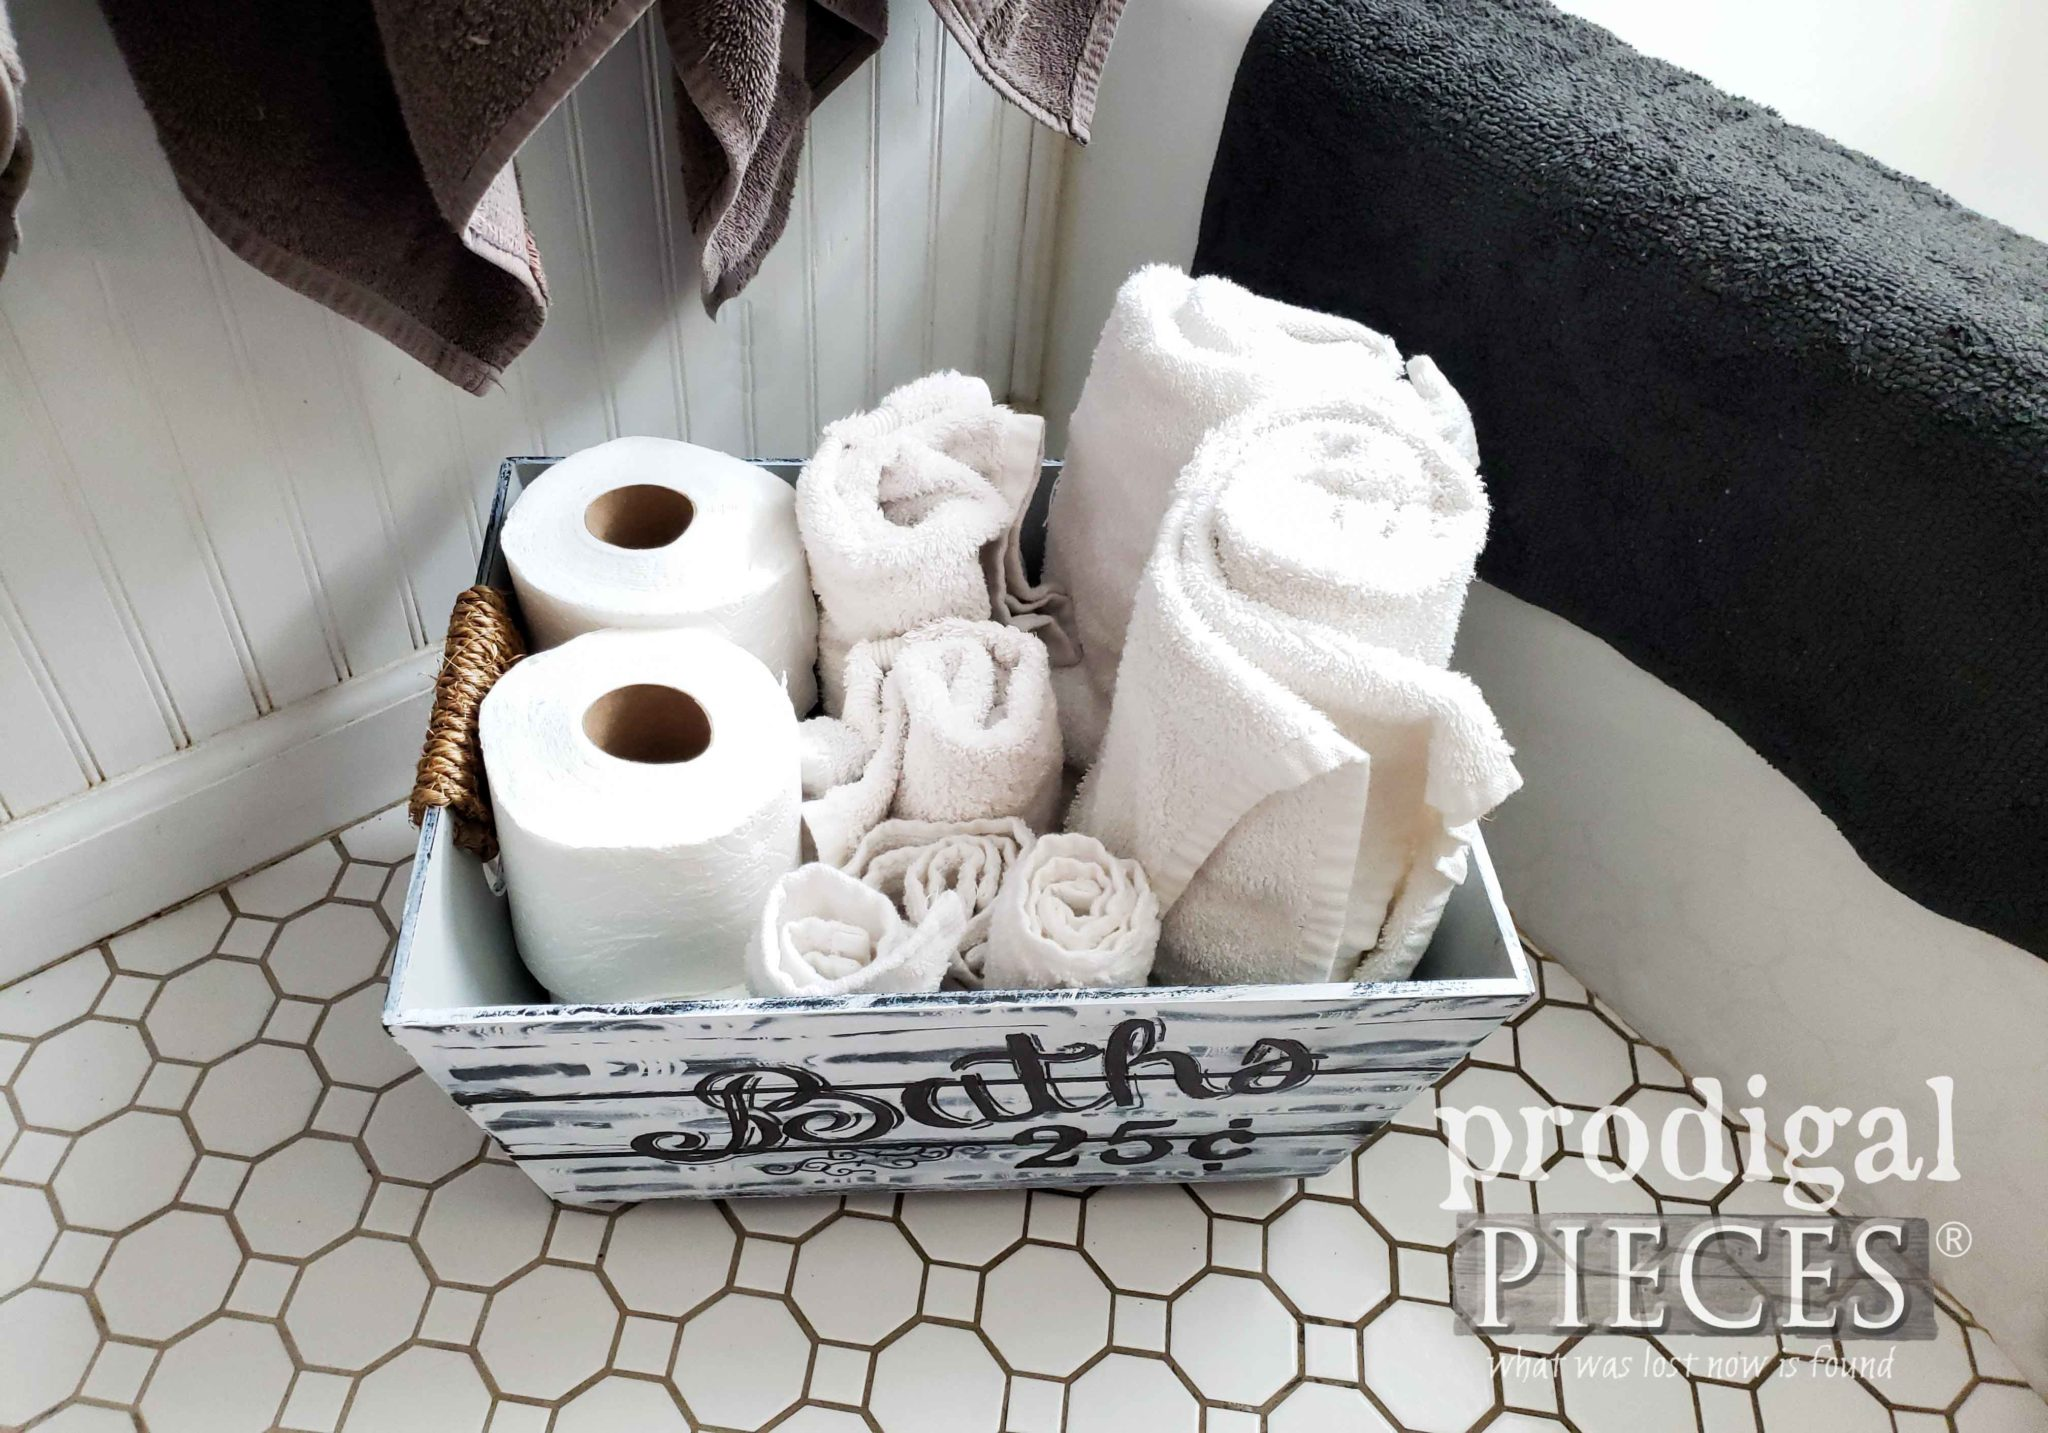 DIY Farmhouse Towel Holder Bin by Larissa of Prodigal Pieces | prodigalpieces.com #prodigalpieces #diy #farmhouse #home #shopping #homedecor #homedecorideas #vintage